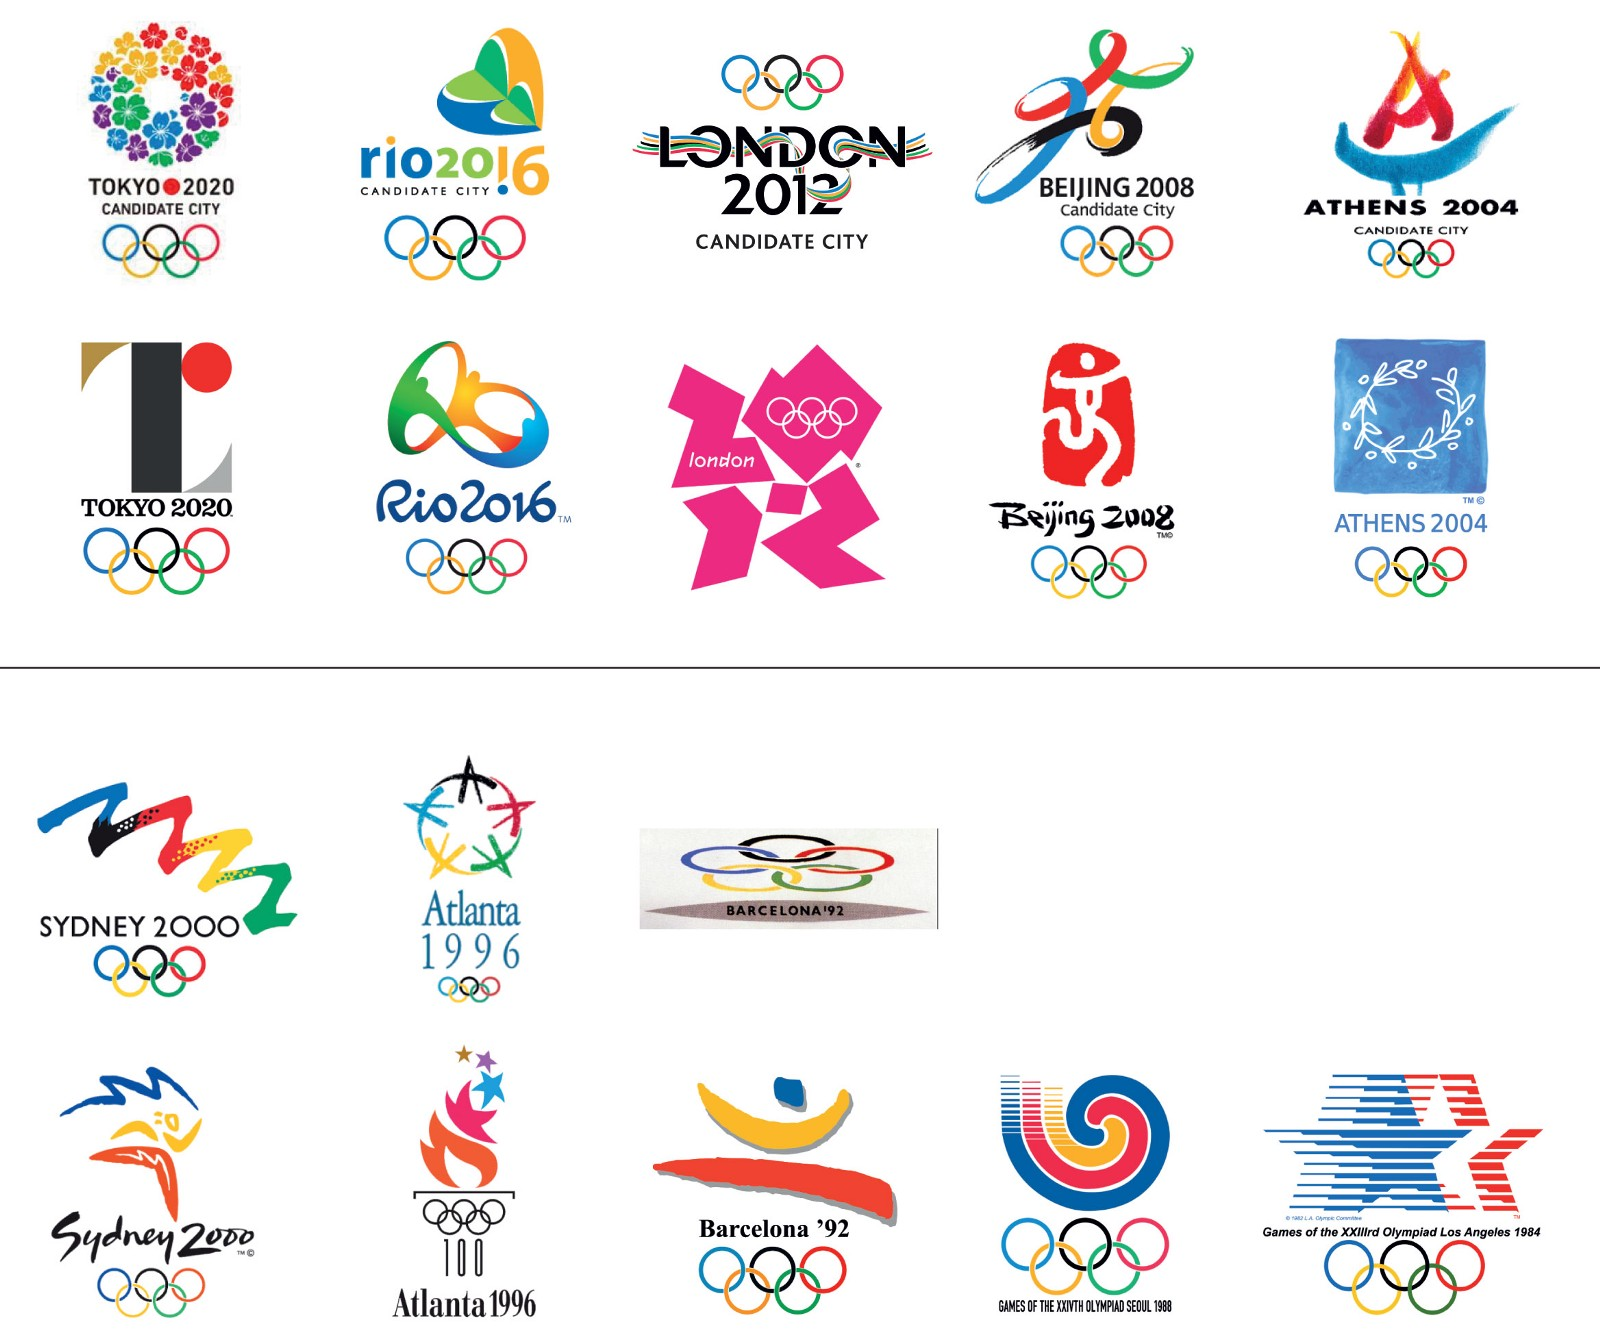 What makes a winning olympic bid logo michail kowal medium note the tokyo 2020 emblem was withdrawn in 2015 due to allegations of plagiarism bid logos for barcelona seoul and la were not available biocorpaavc Choice Image